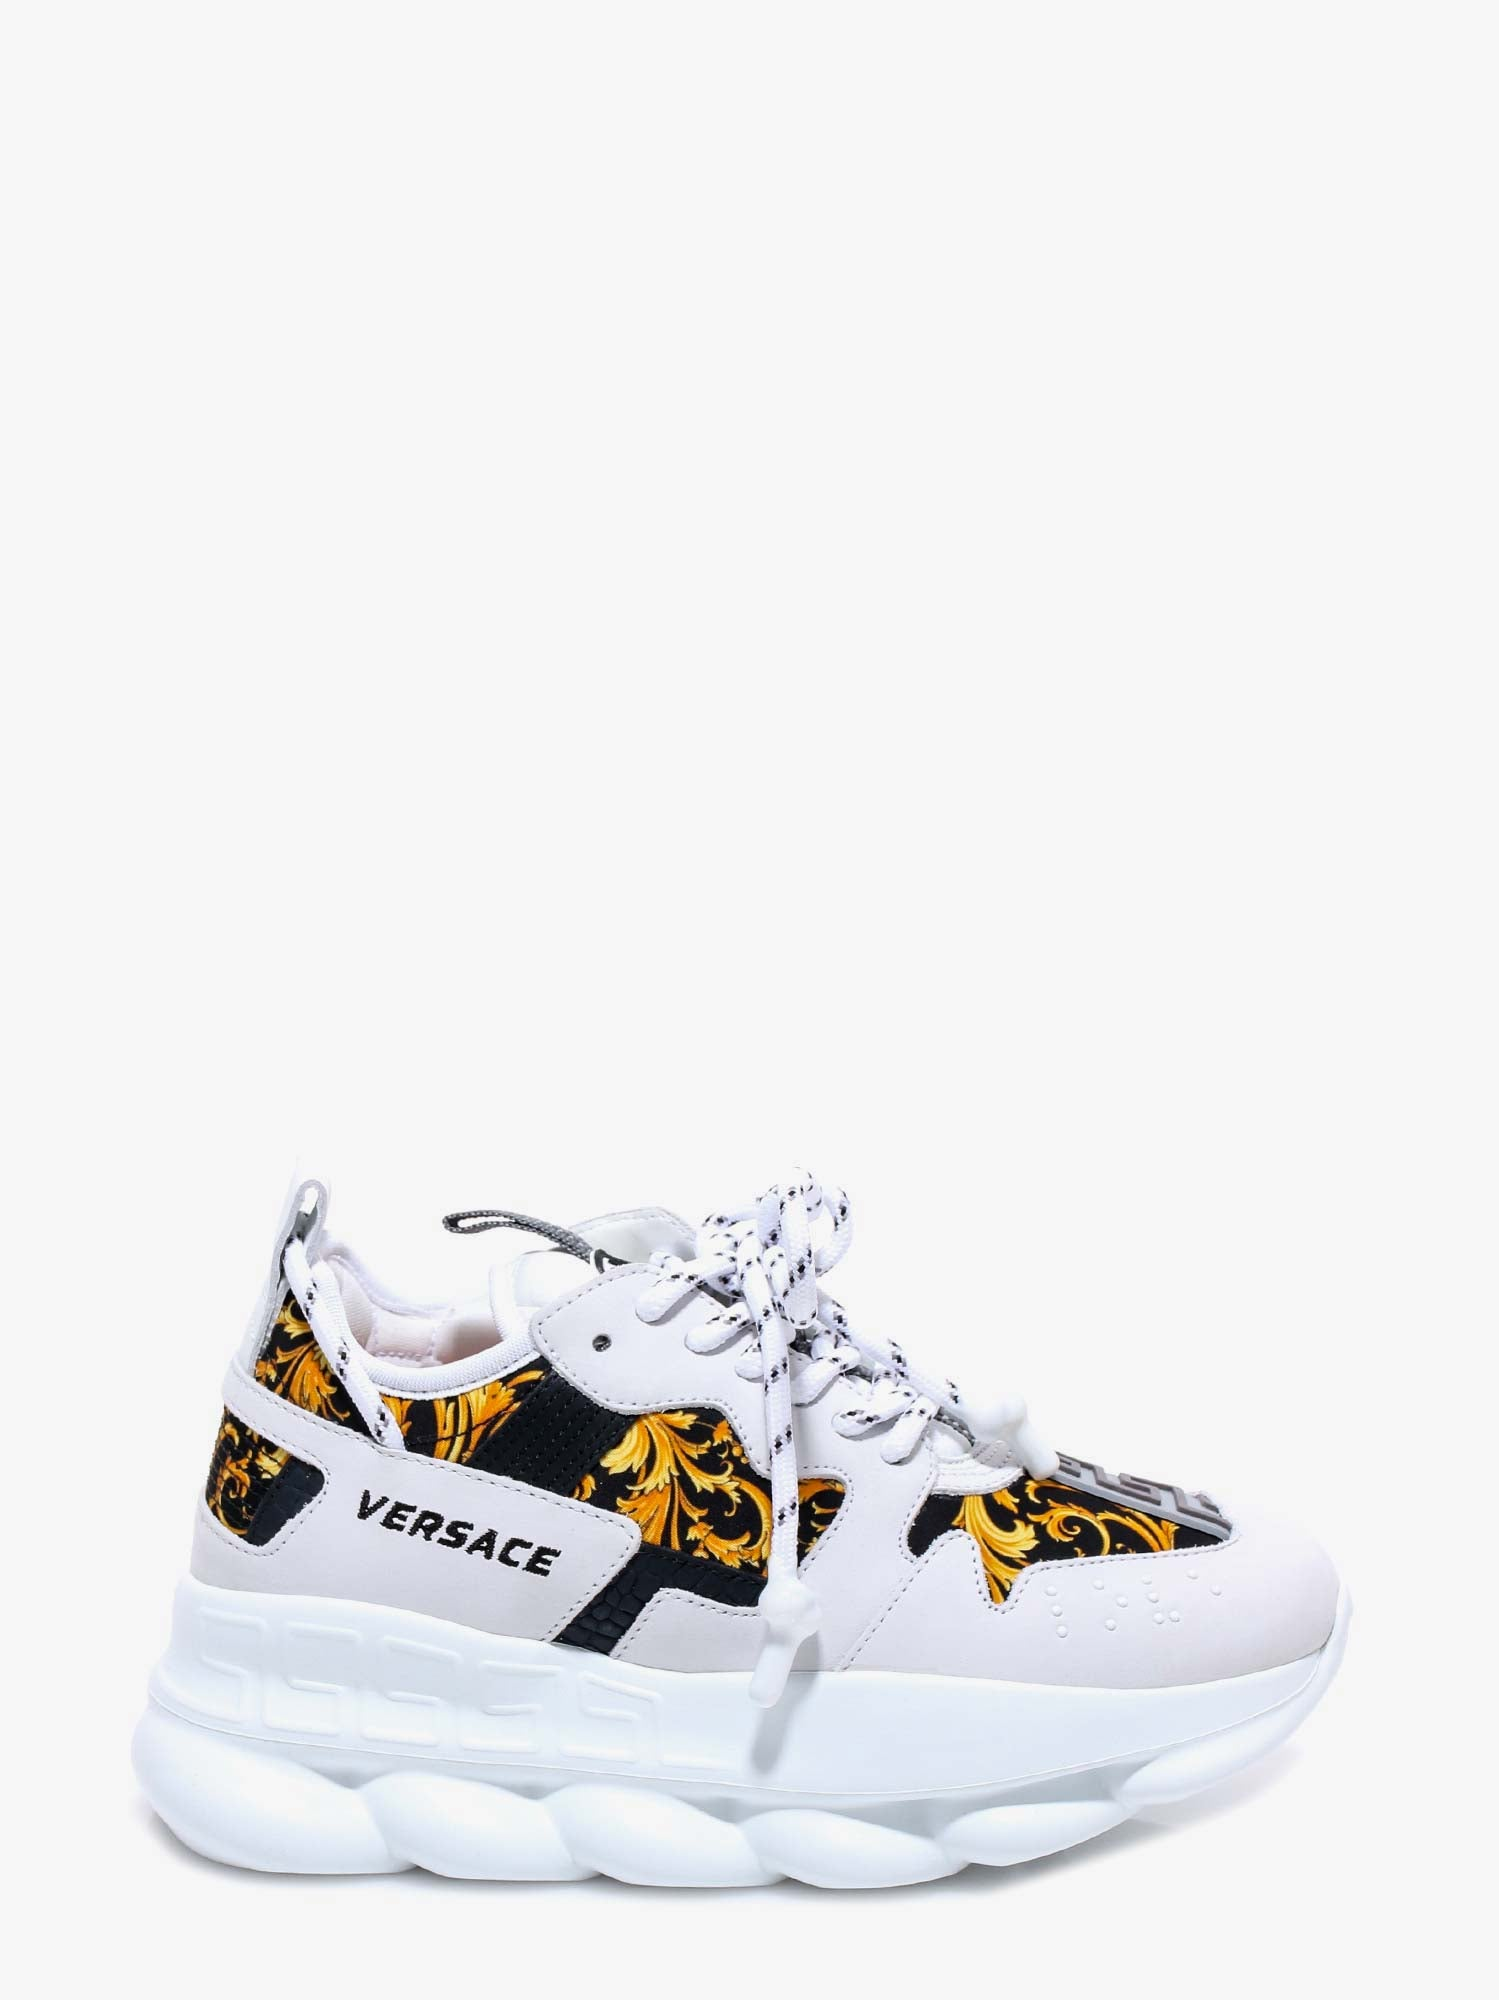 Versace Platforms SNEAKERS